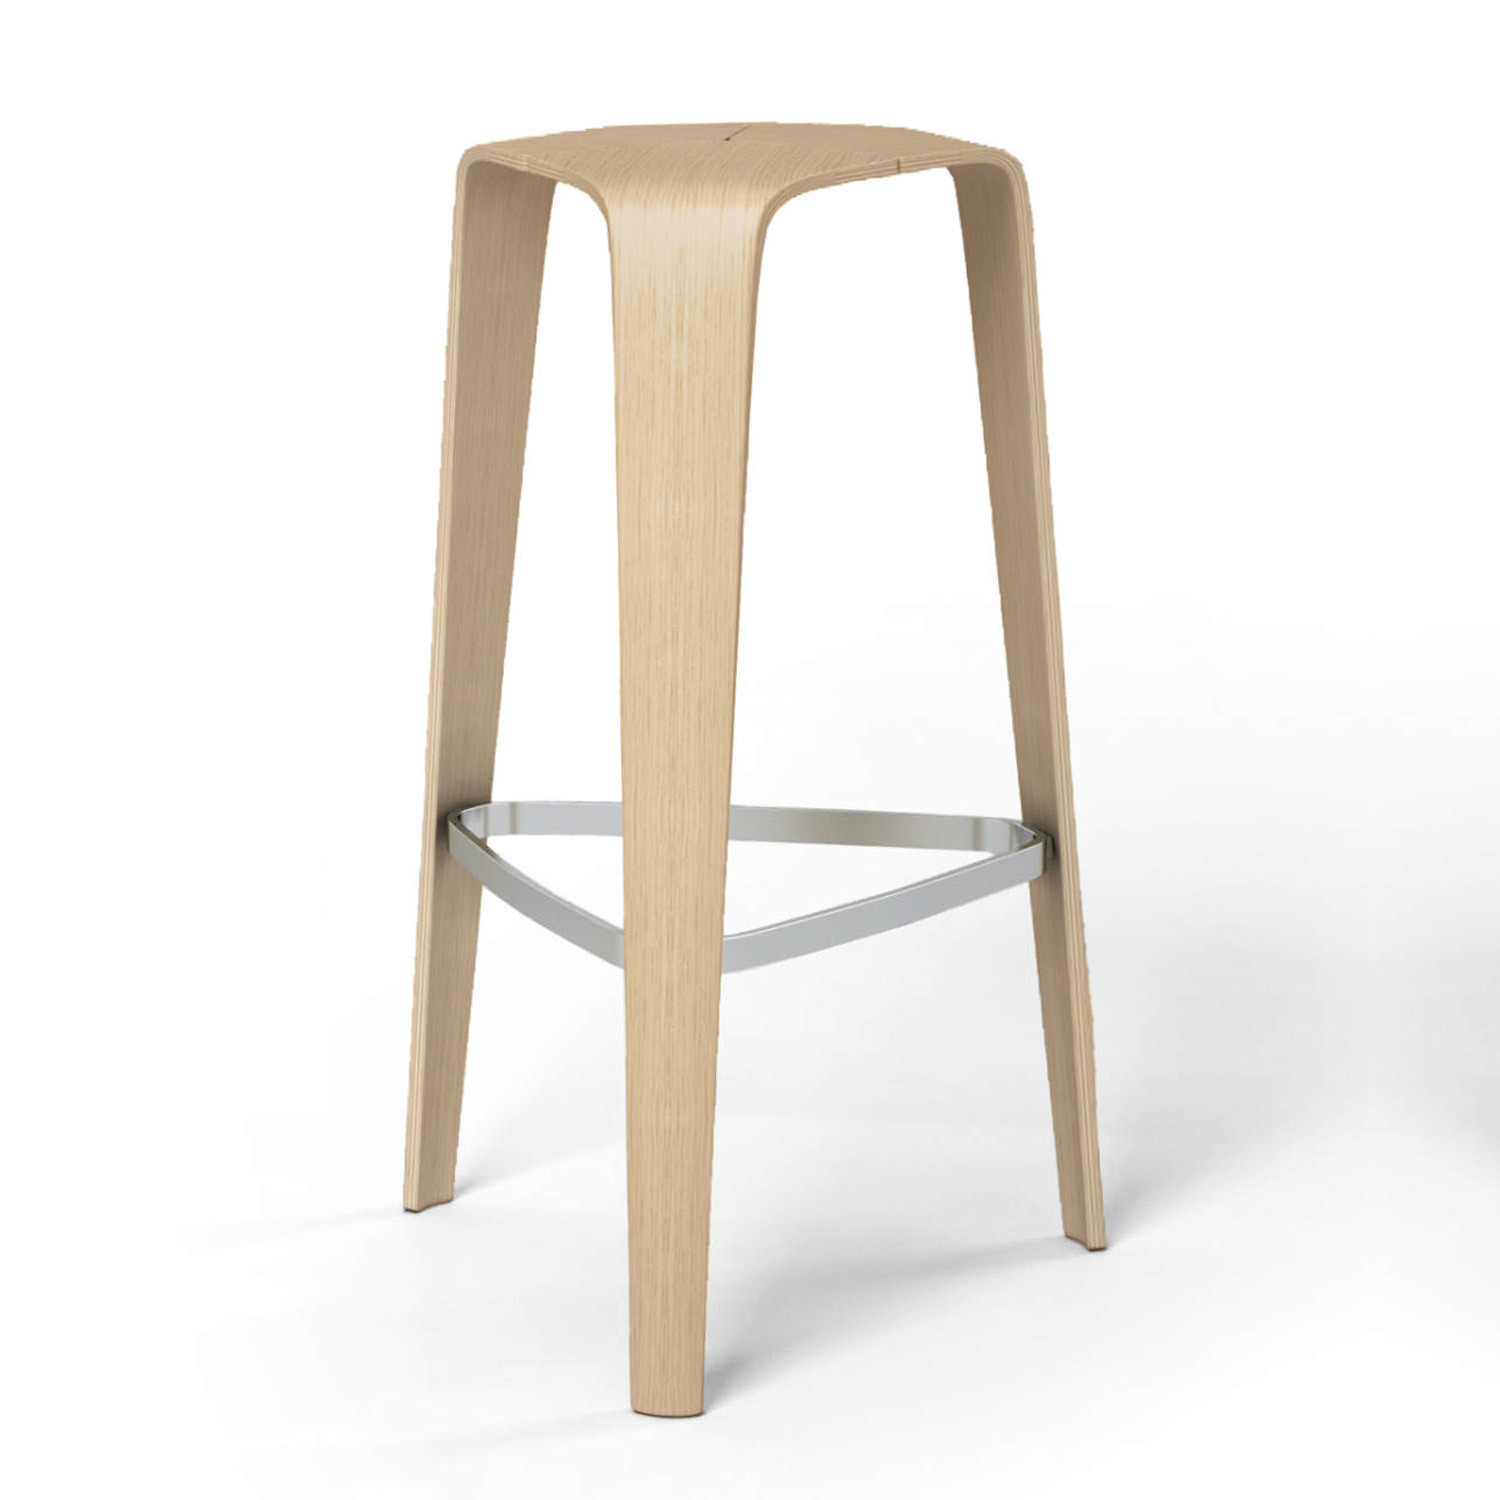 Hoc Bar Stool available in various finishes